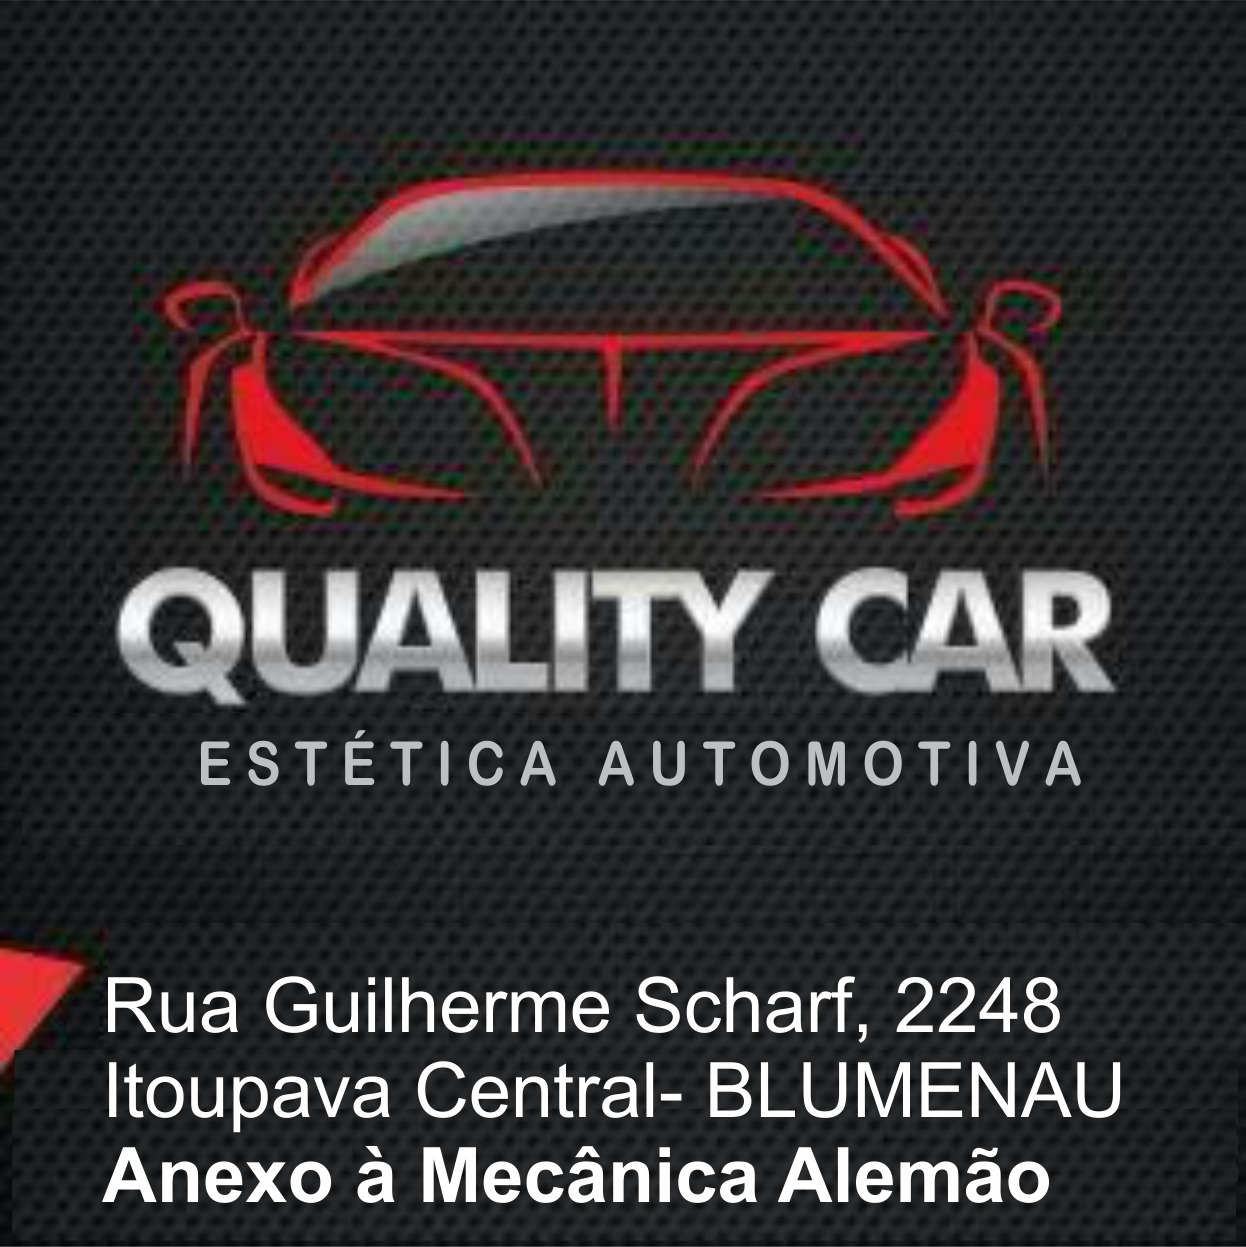 Quality Car Estética Automotiva